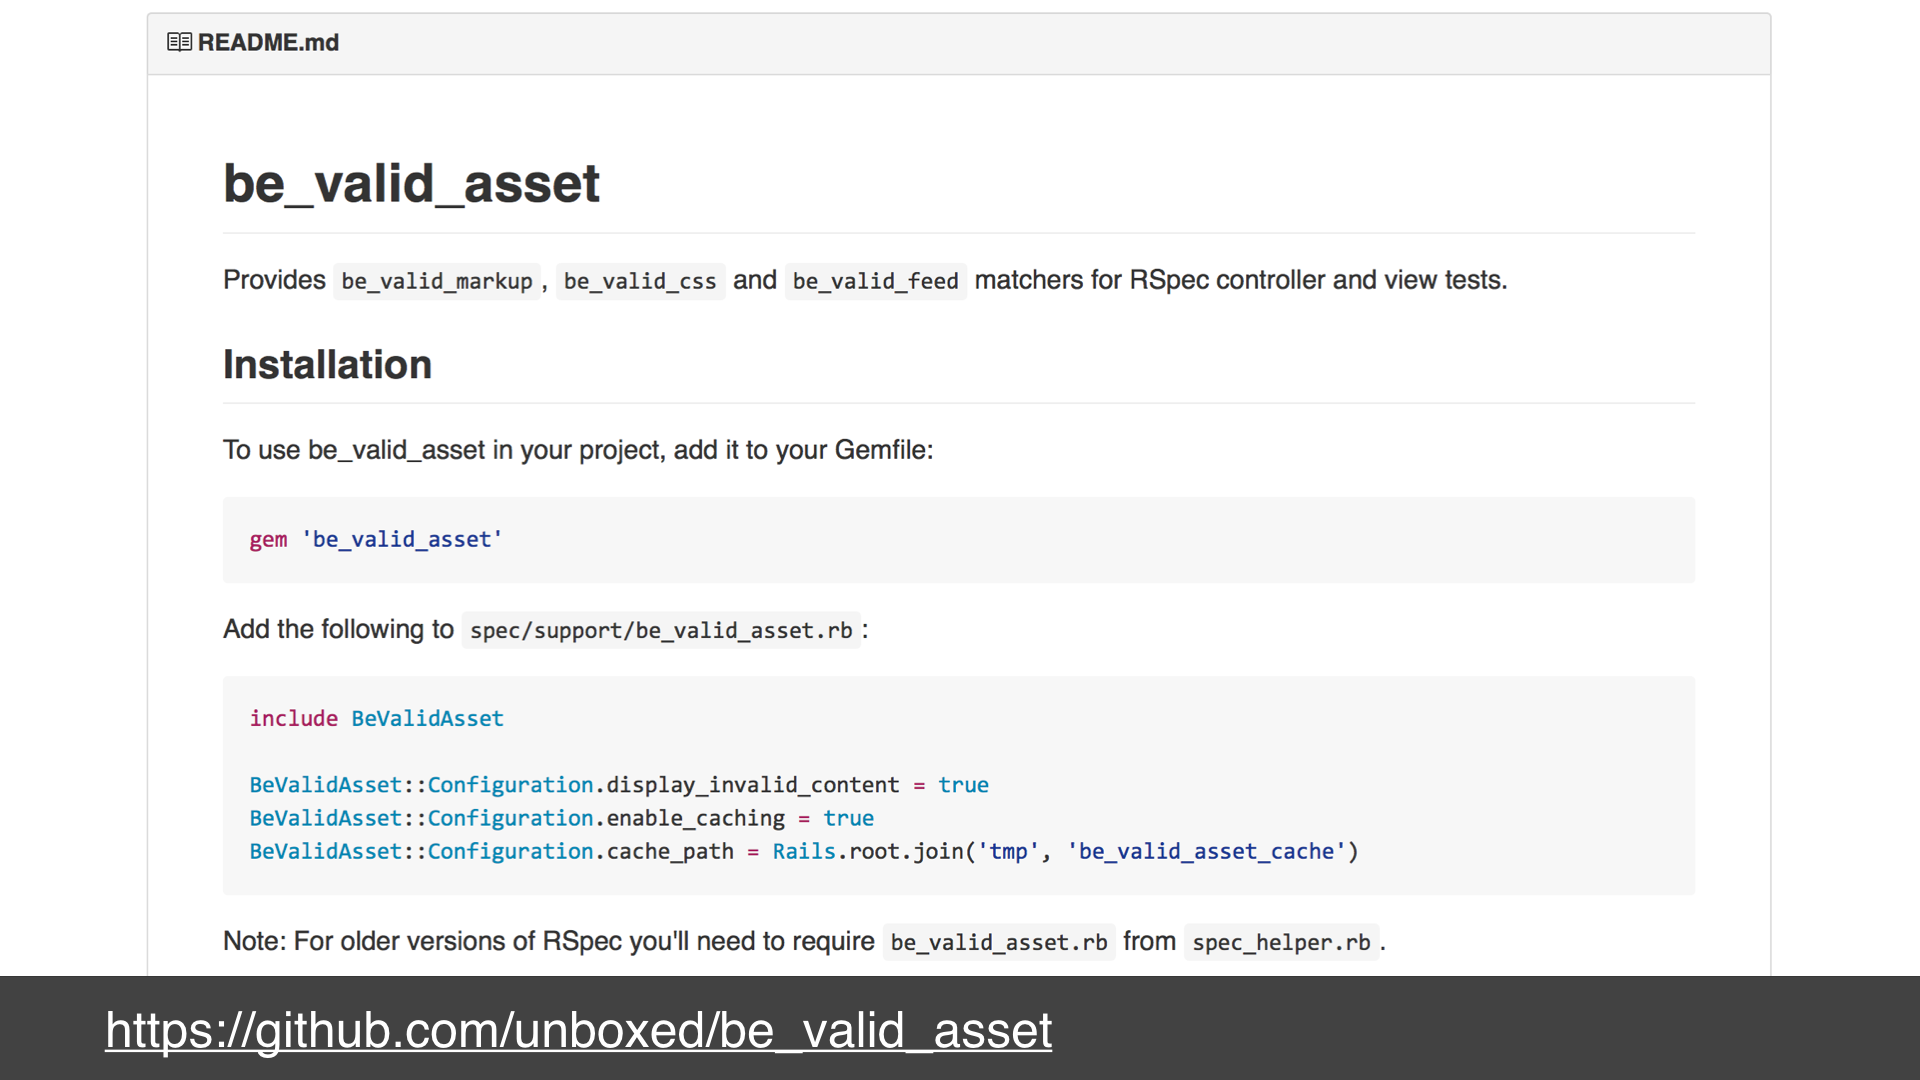 A screenshot of the readme for the be_valid_asset gem as rendered on its github project page - text: https://github.com/unboxed/be_valid_asset